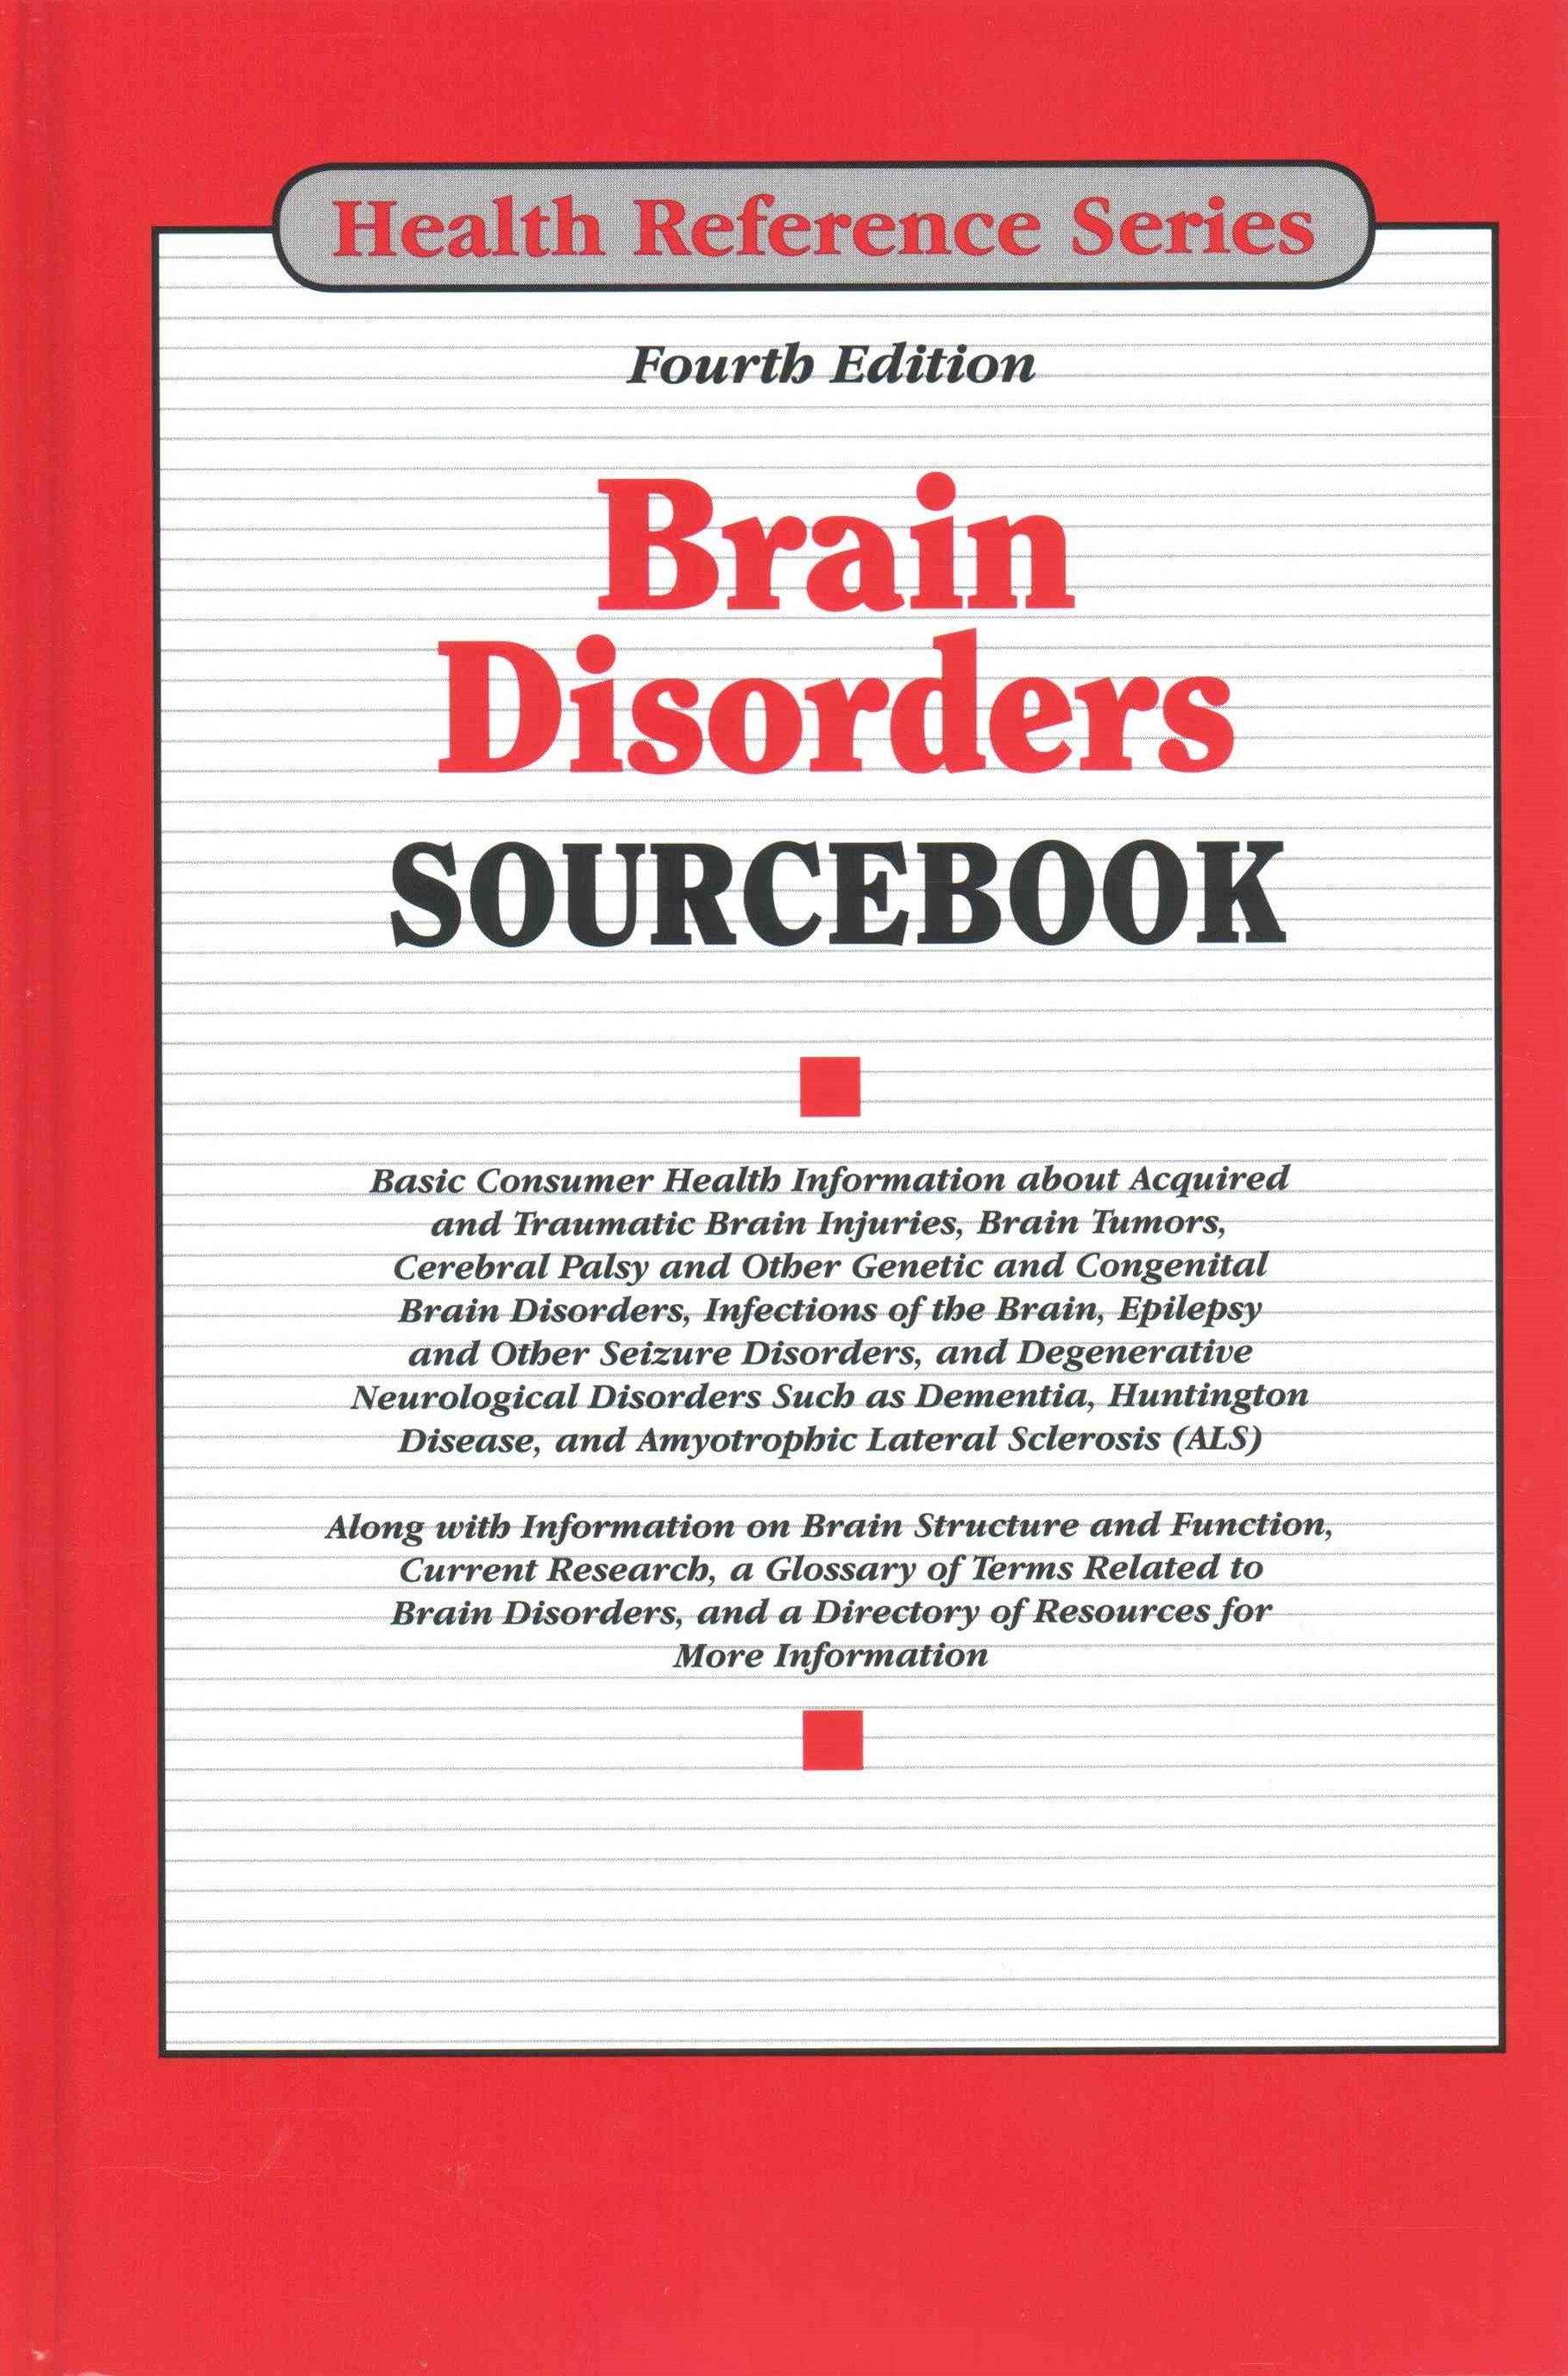 Brain Disorders Sourcebook